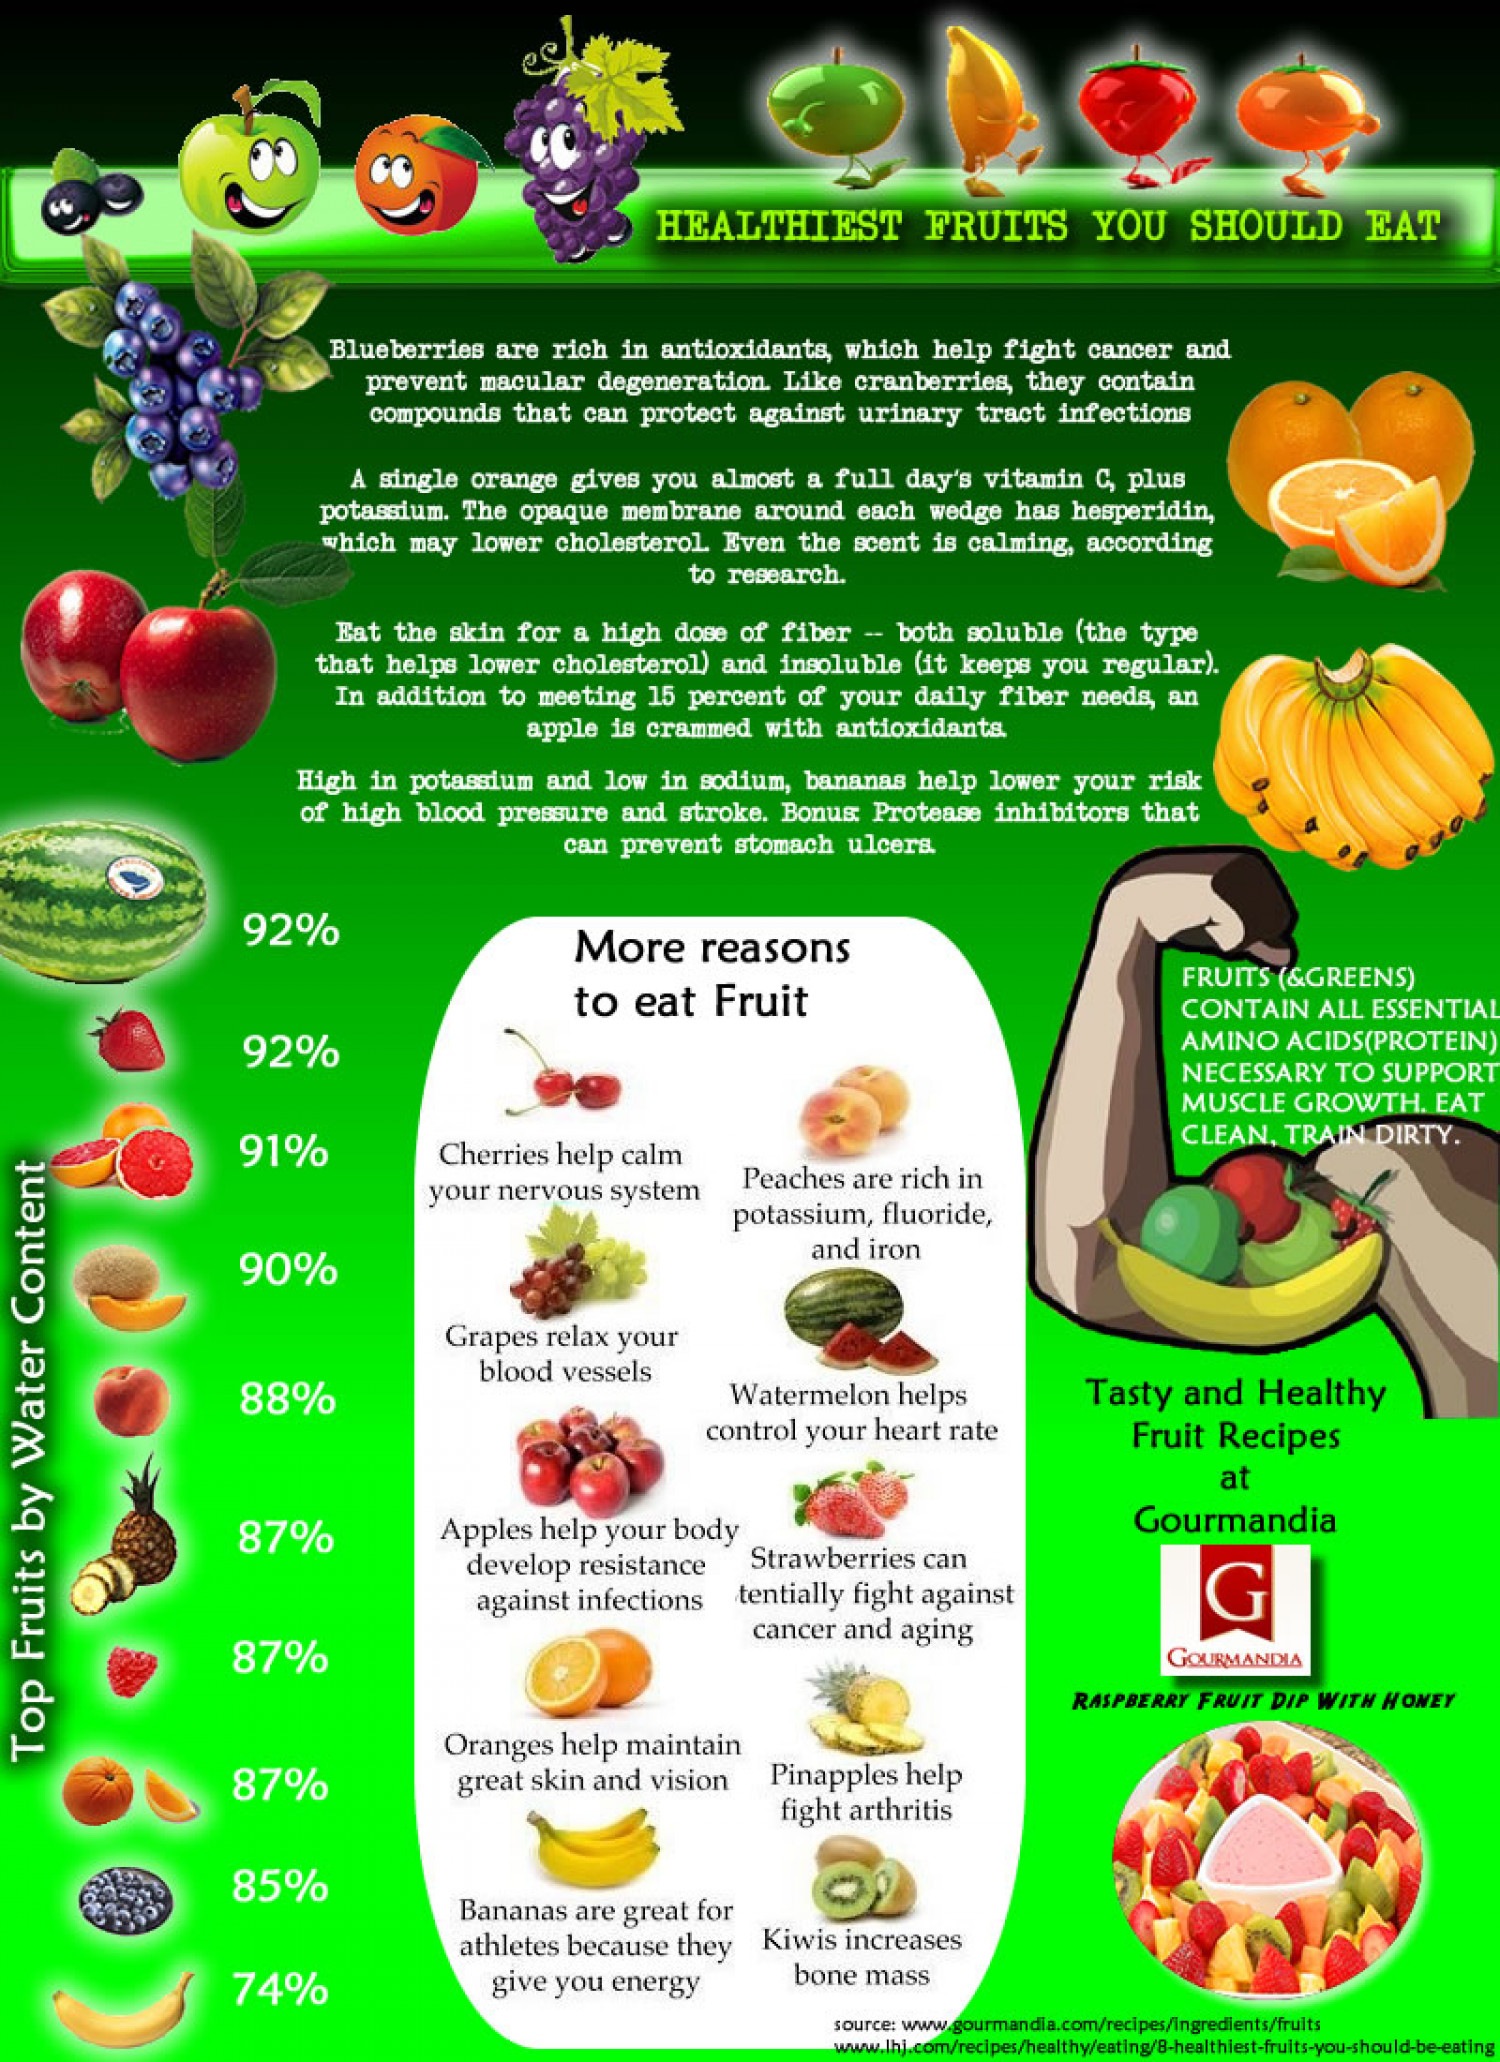 Healthiest Fruits You Should Eat Visually regarding What Are Healthy Fruits To Eat